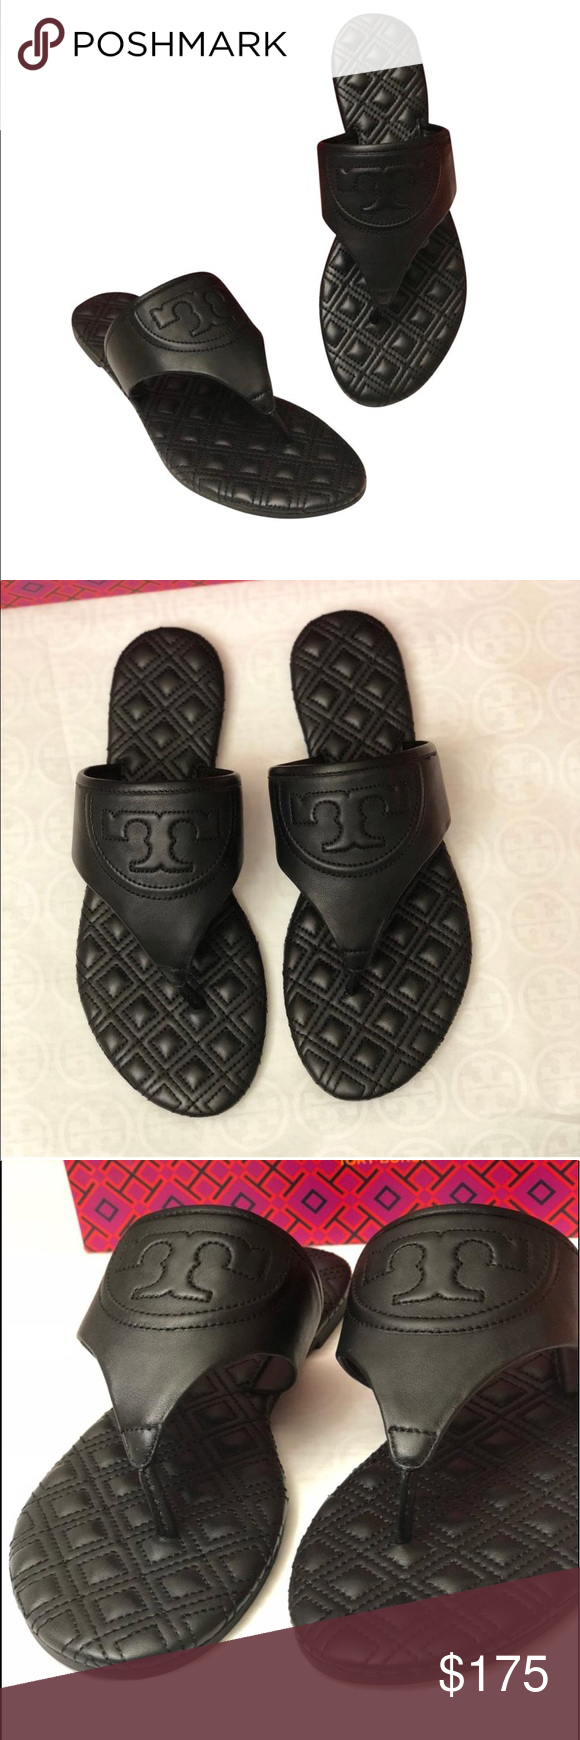 5498ccf6f Tory Burch Fleming Quilted Flat Thong Sandals. Brand New with box